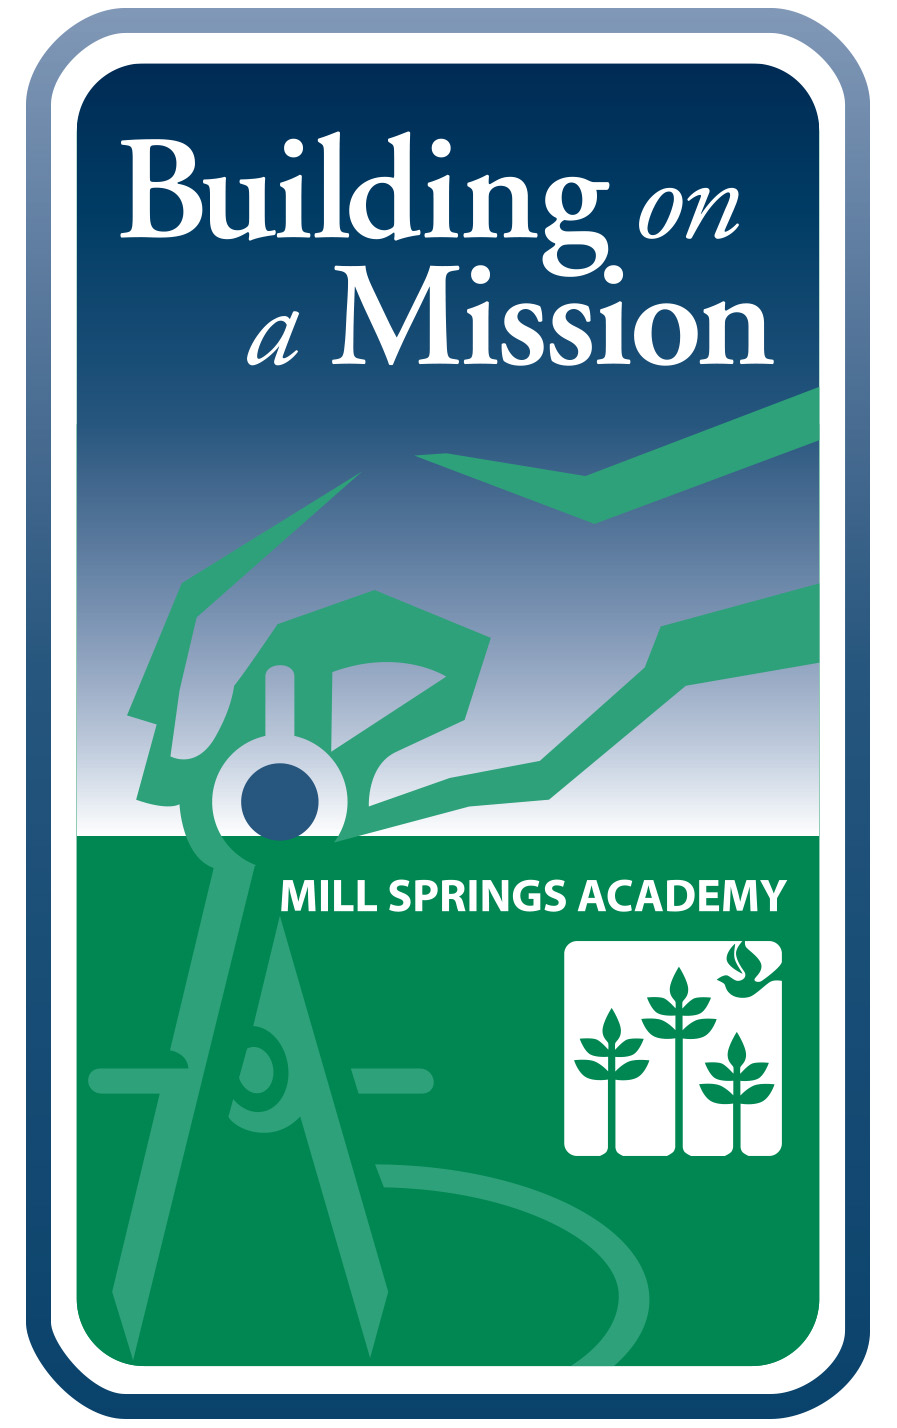 Building on a Mission Capital Campaign logo